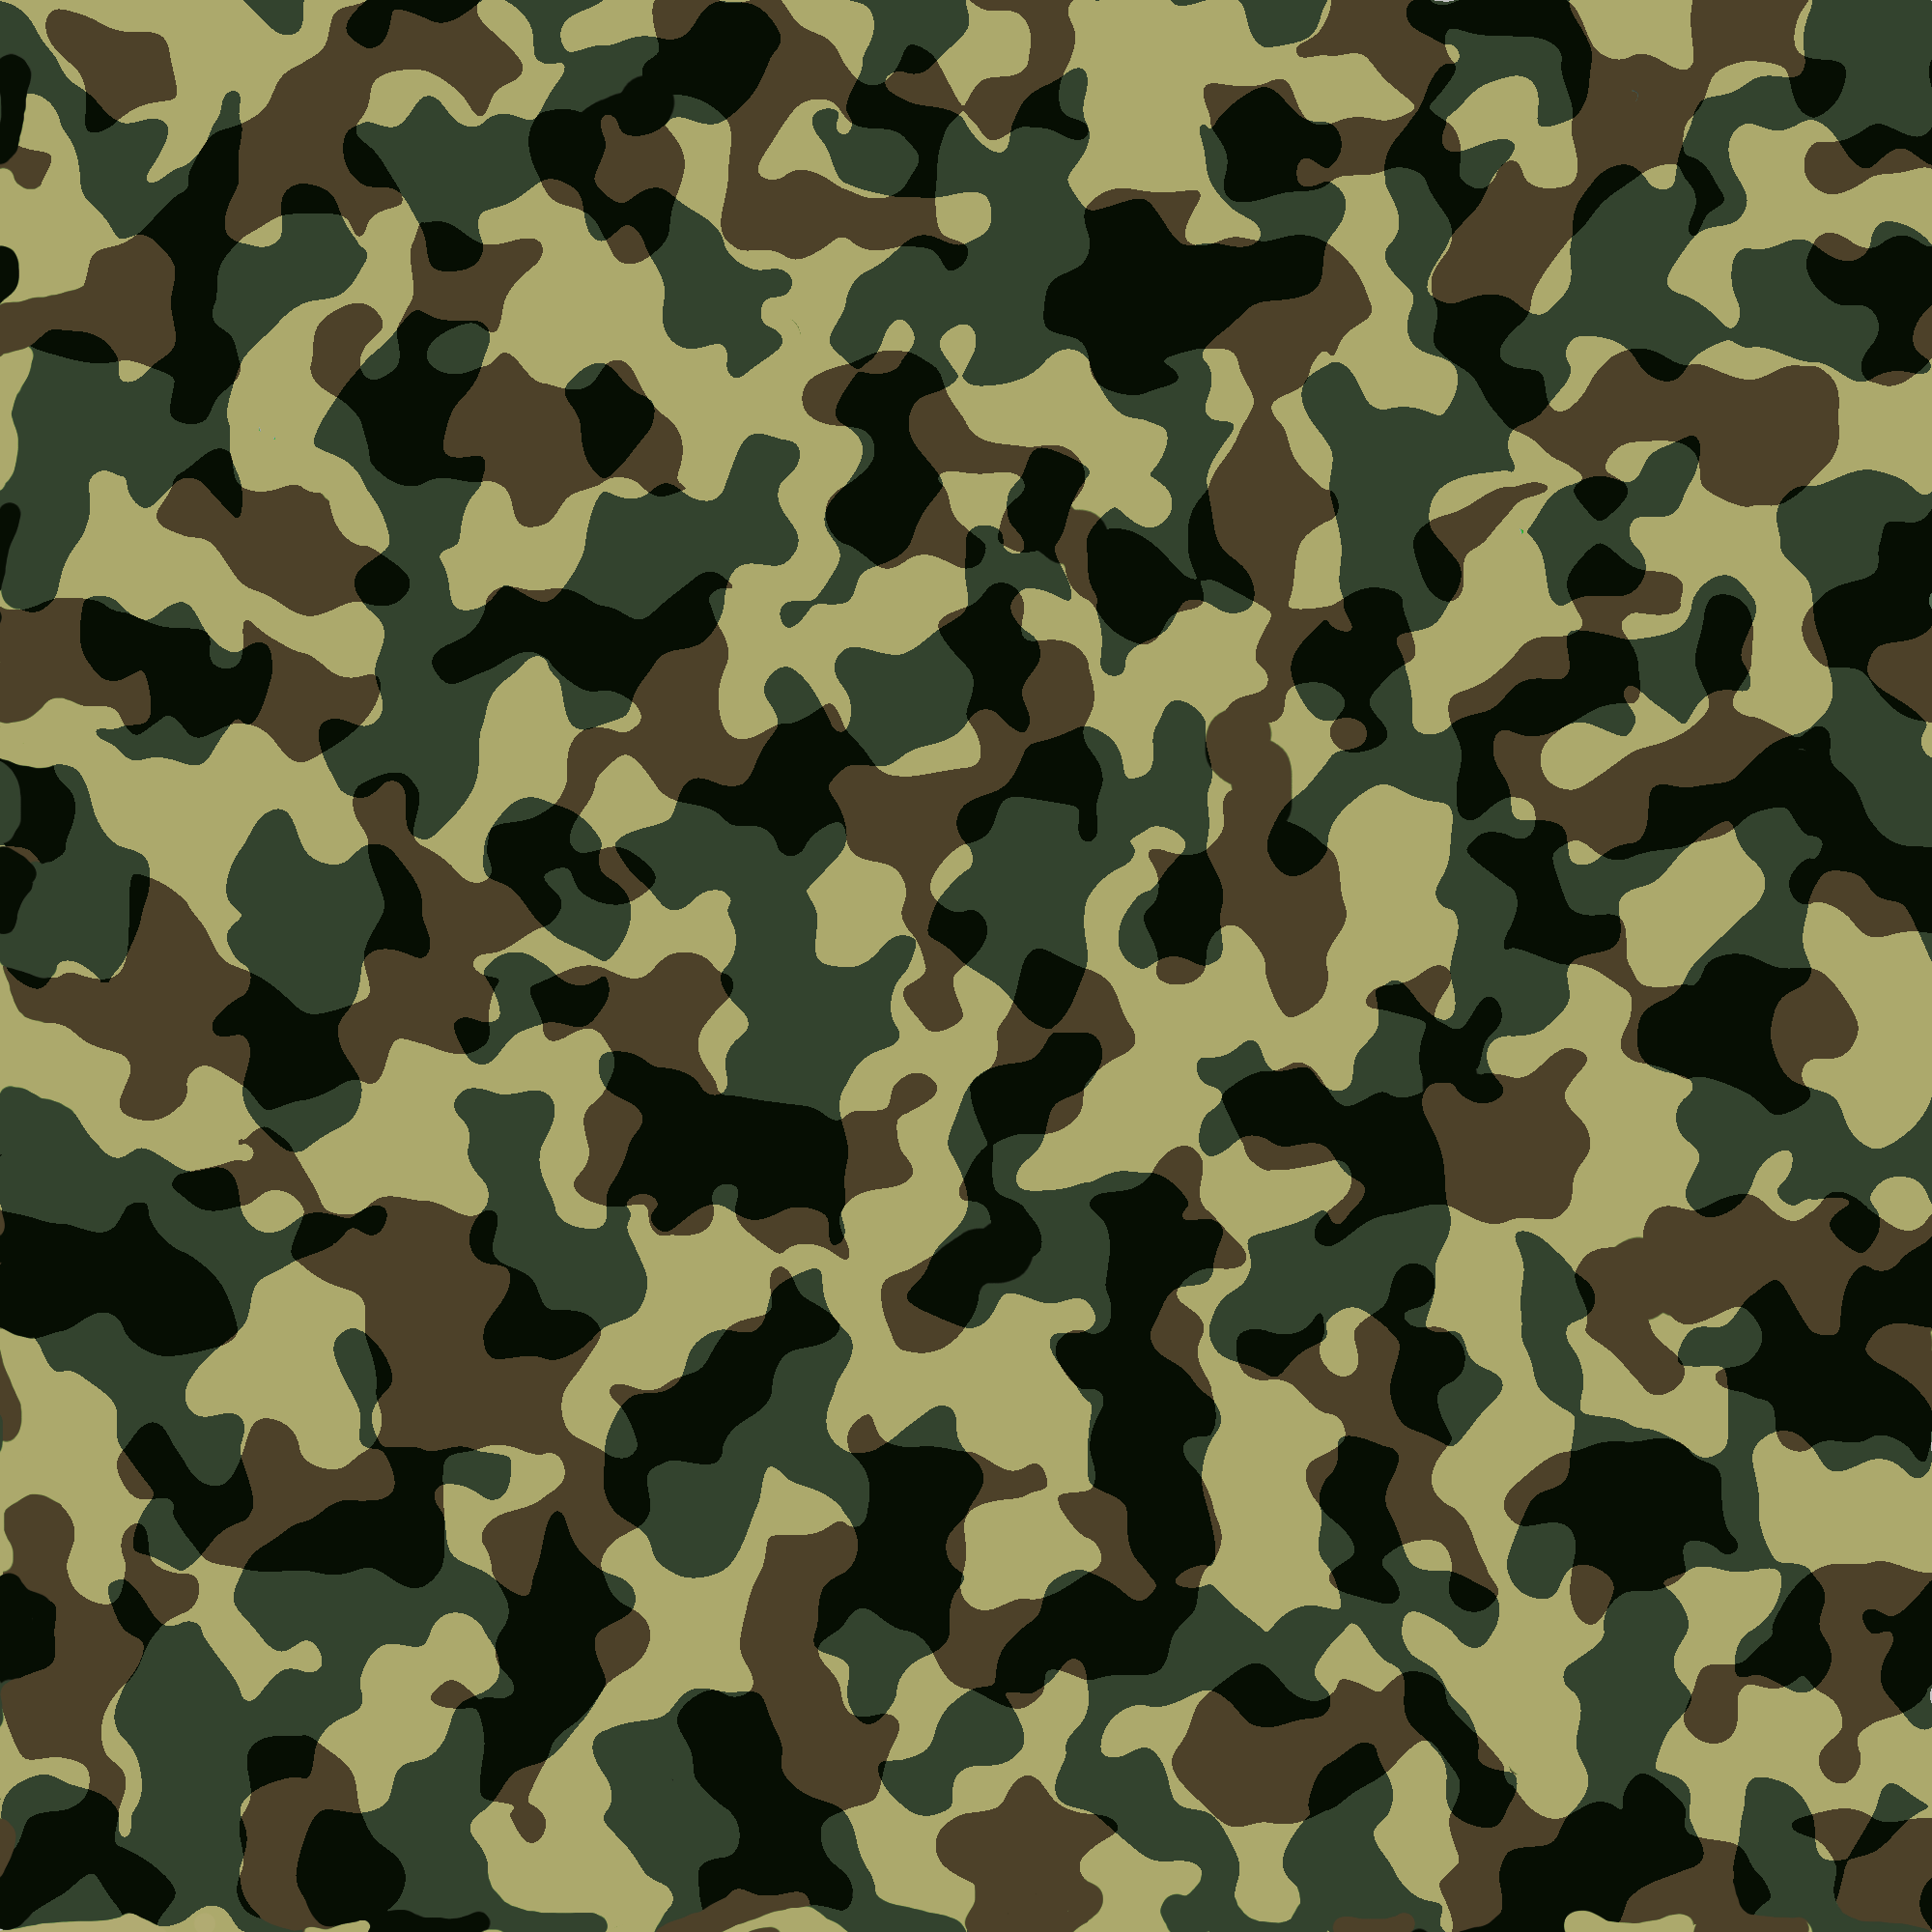 Military Chic: Camouflage - Genue Inc.Genue Inc.